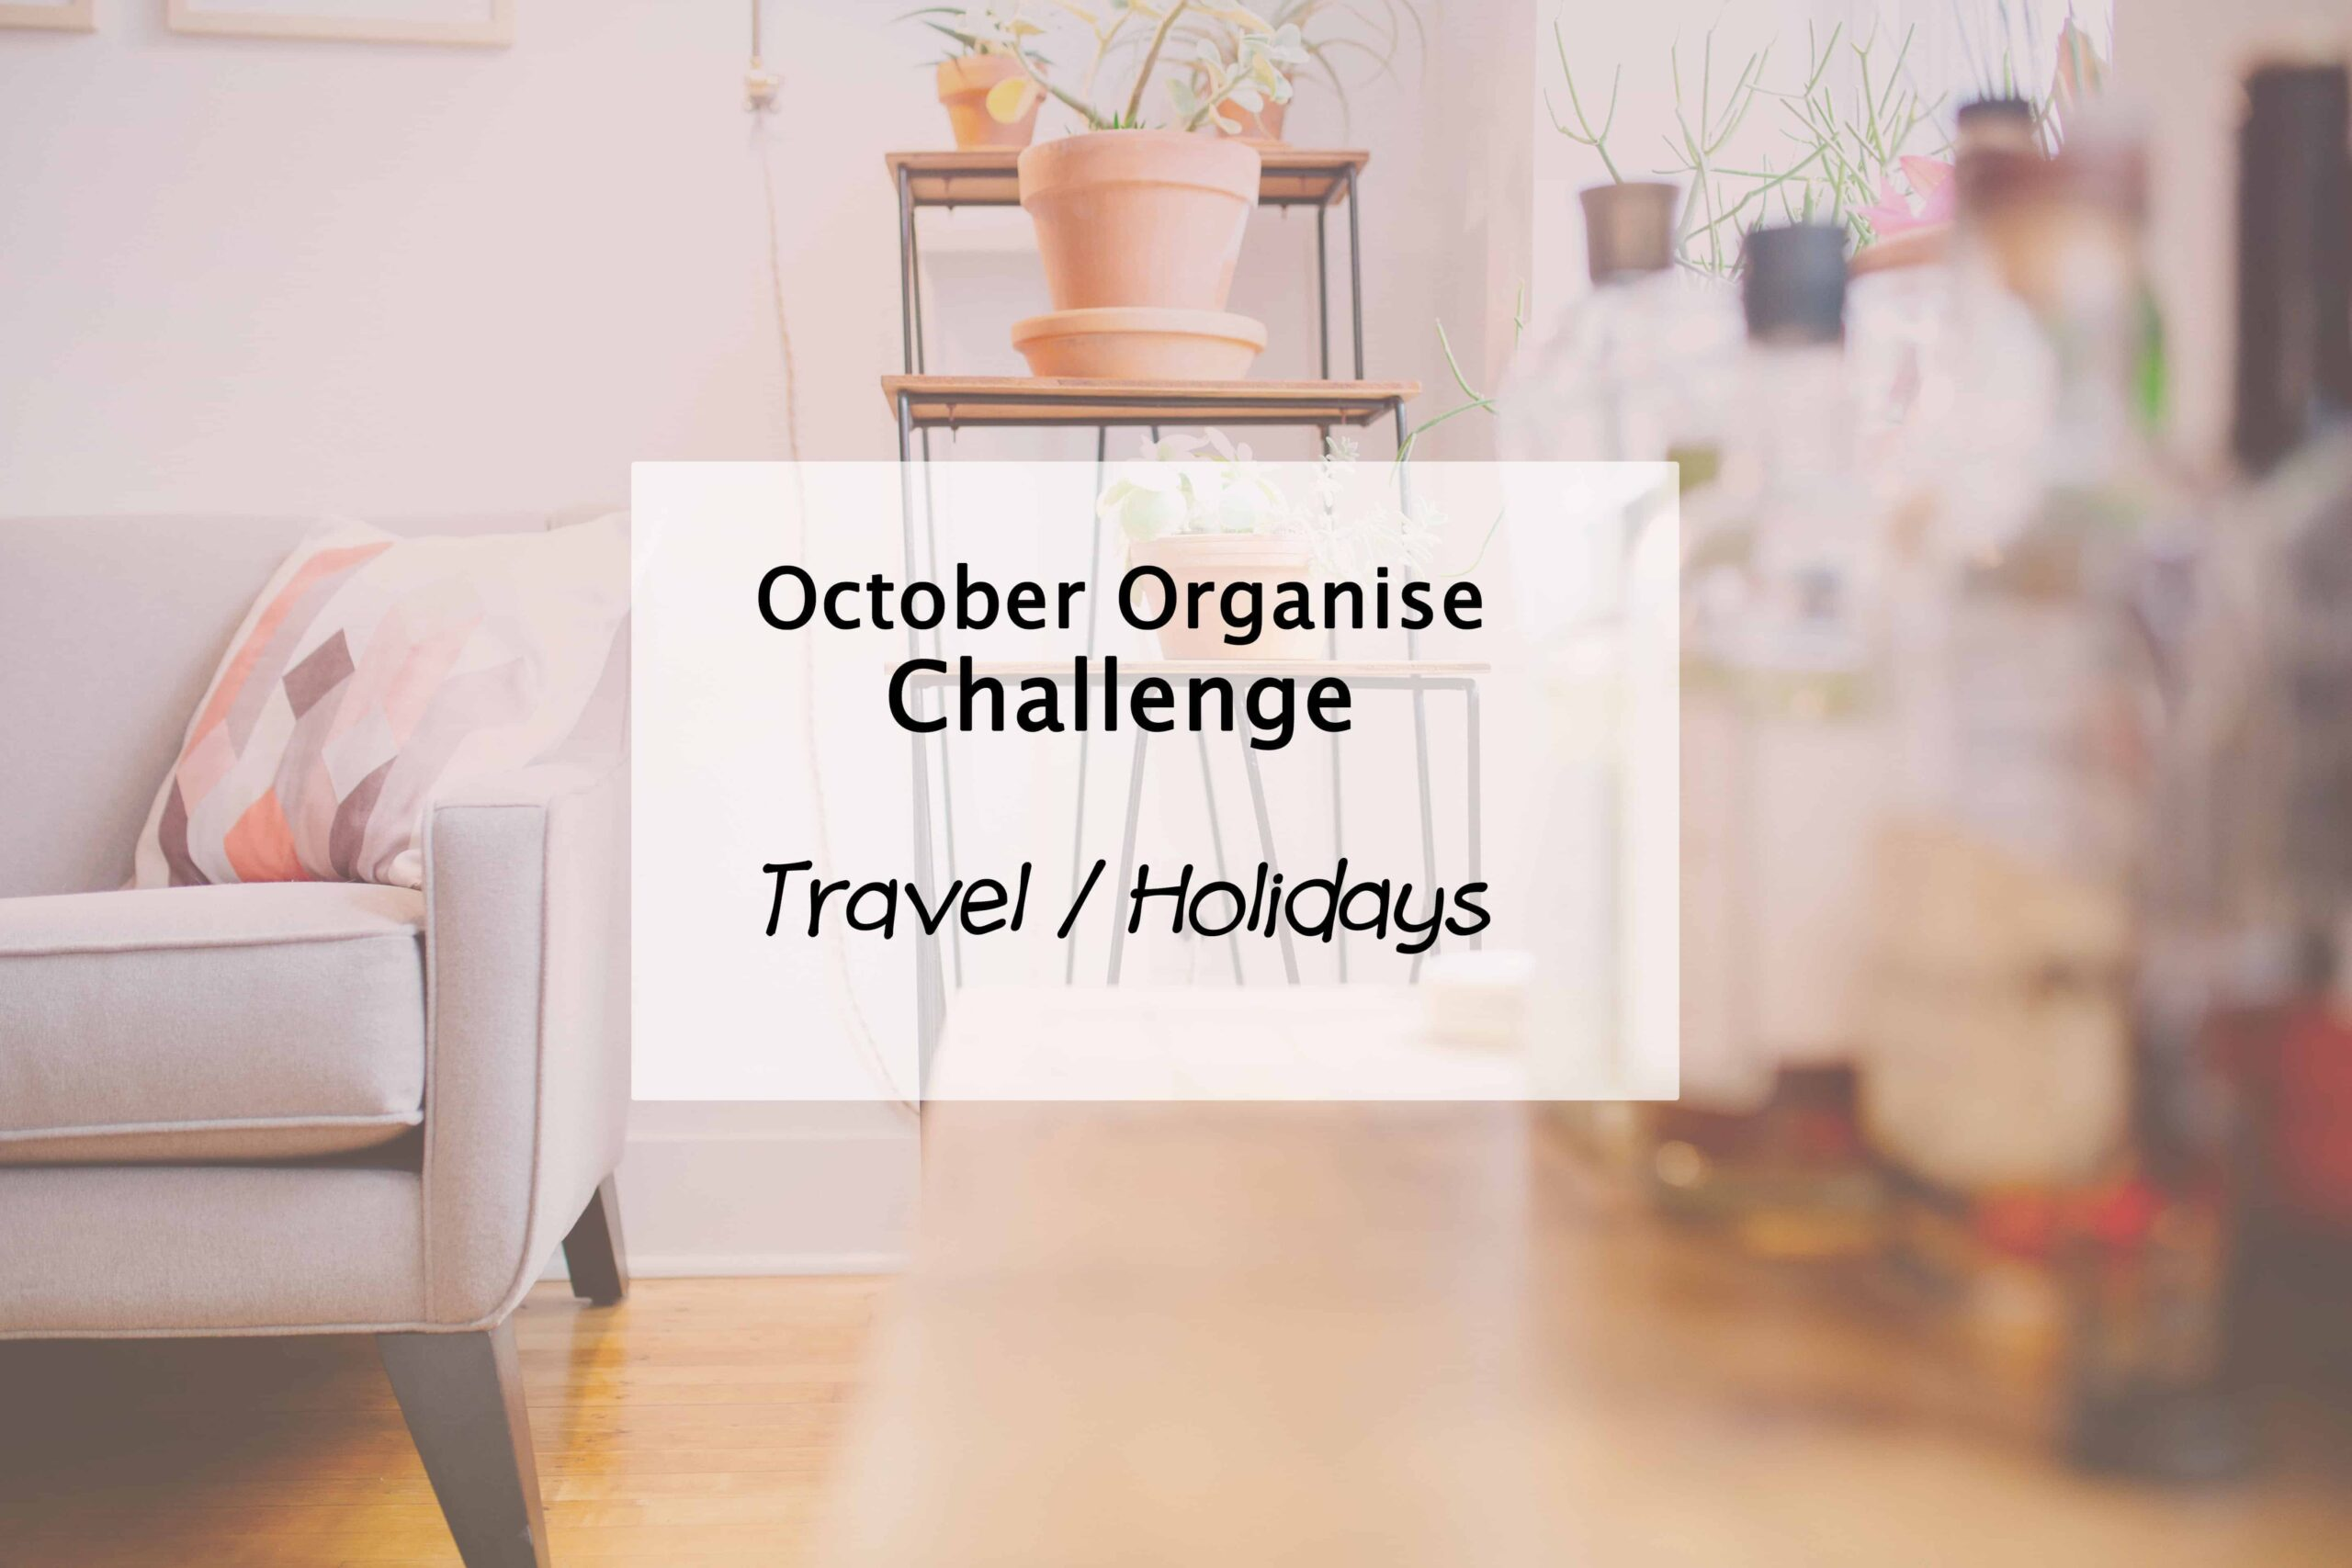 Organise Travel and Holidays